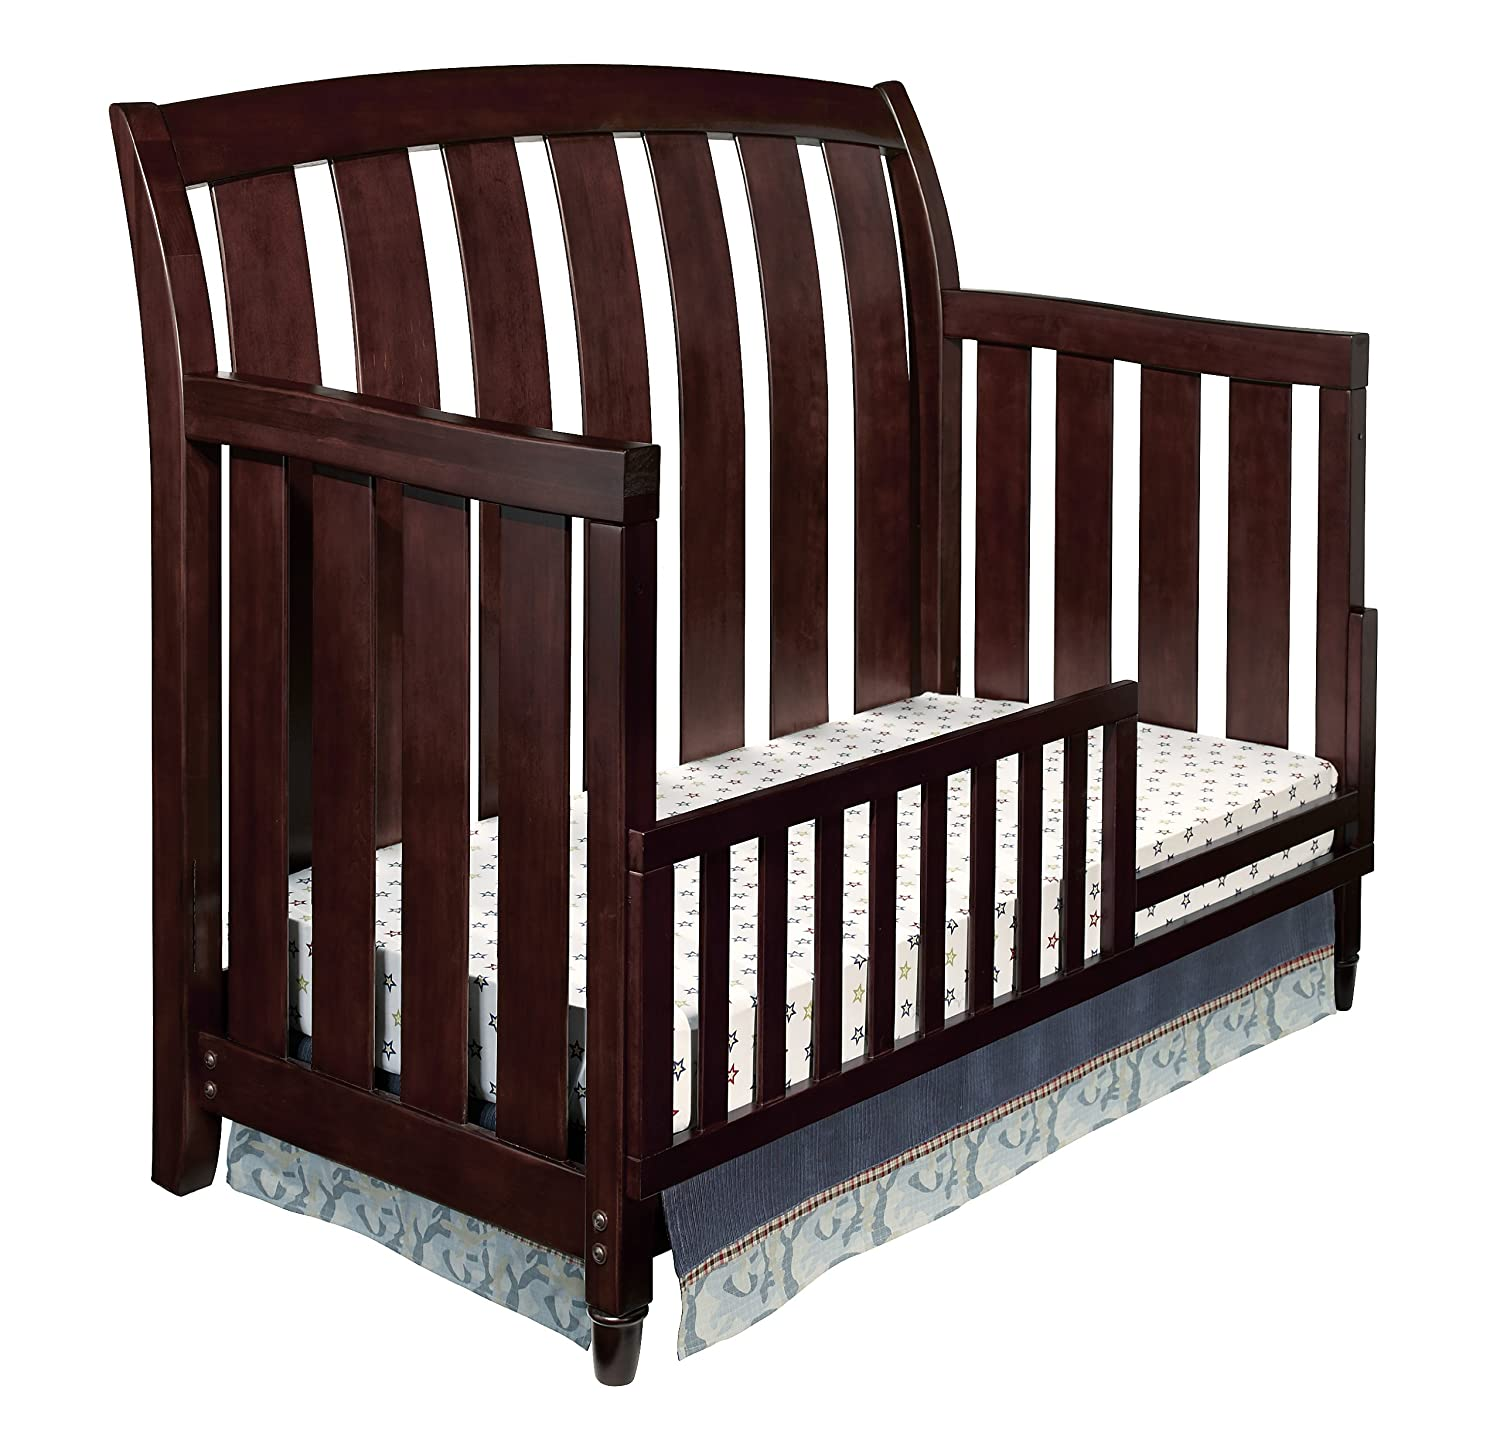 guidelin cribs bellini debby by beautiful safest crib nursery ikea hardware furniture delta designs restoration westwood safety bedroom reviews convertible classic